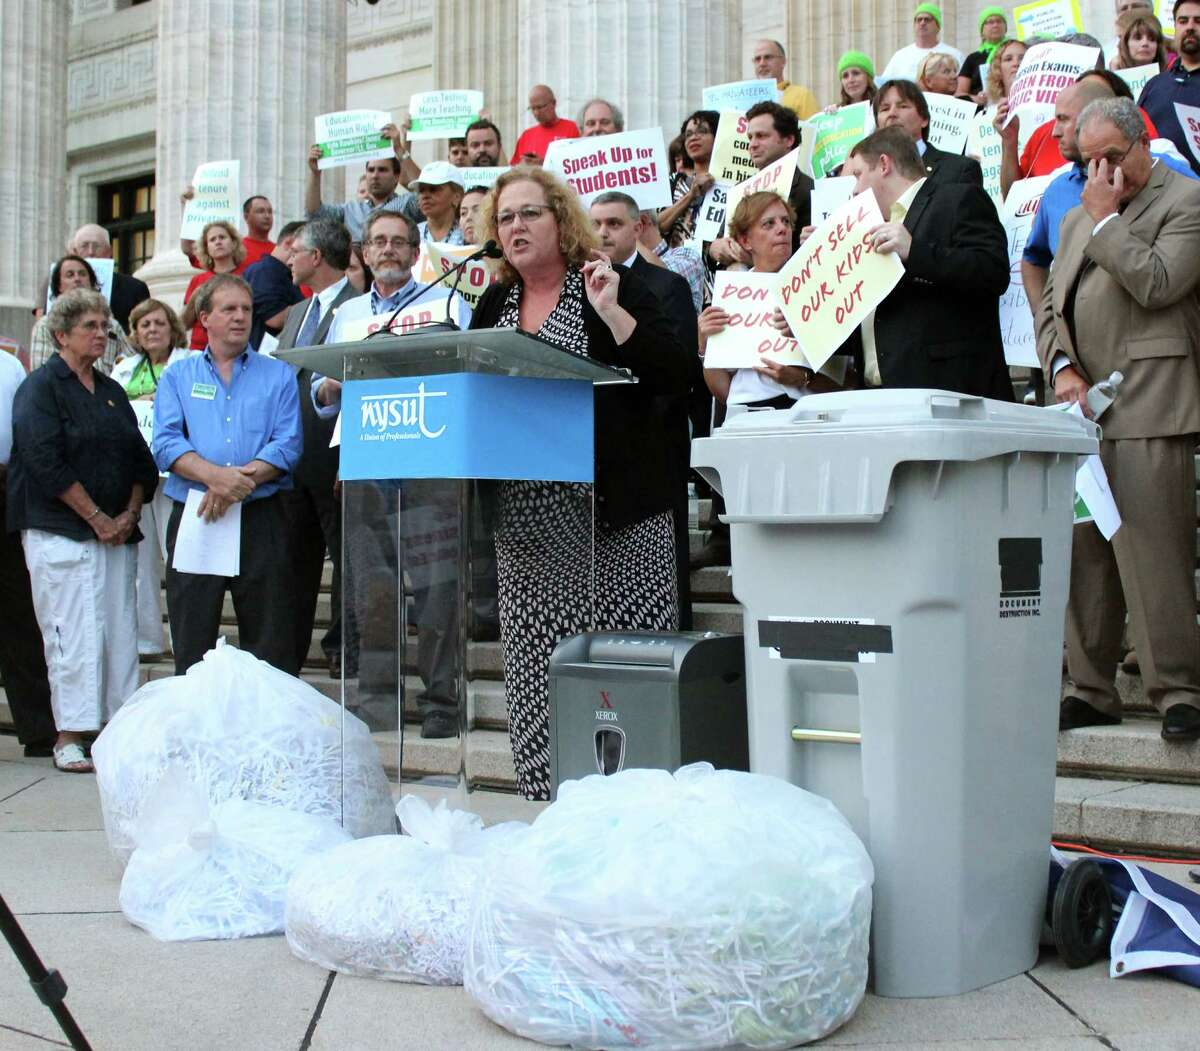 NYSUT President Karen E. Magee speaks at the protest against the common core test contracts outside of the NYS Education Department on Monday evening, August 11, 2014, in Albany N.Y. (Selby Smith/Special to the Times Union)